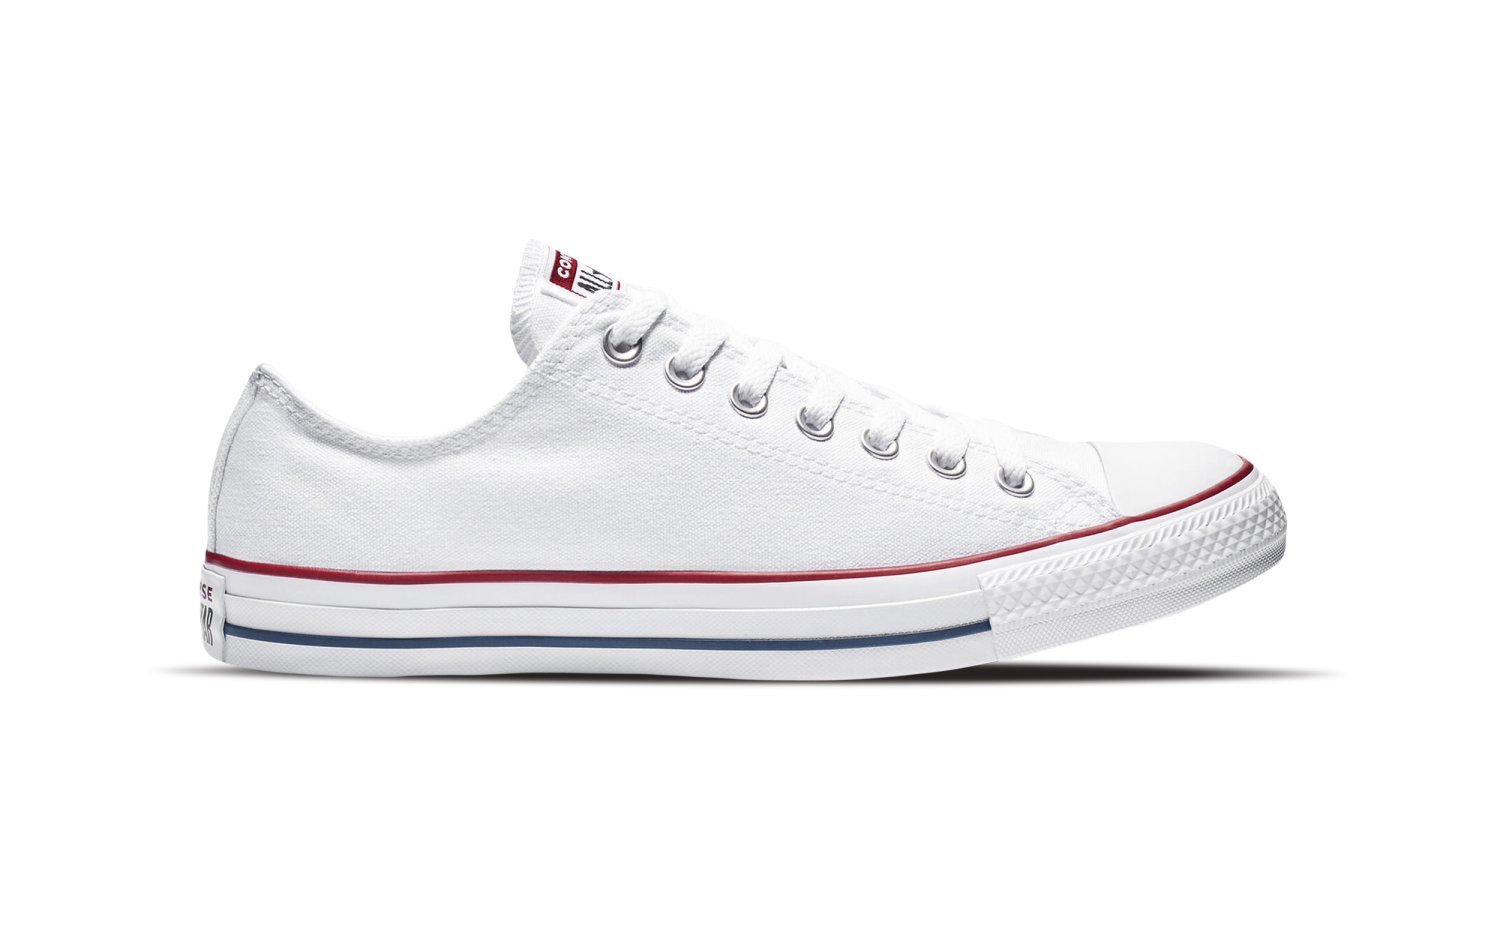 Converse Chuck Taylor All Star Low (M7652C)